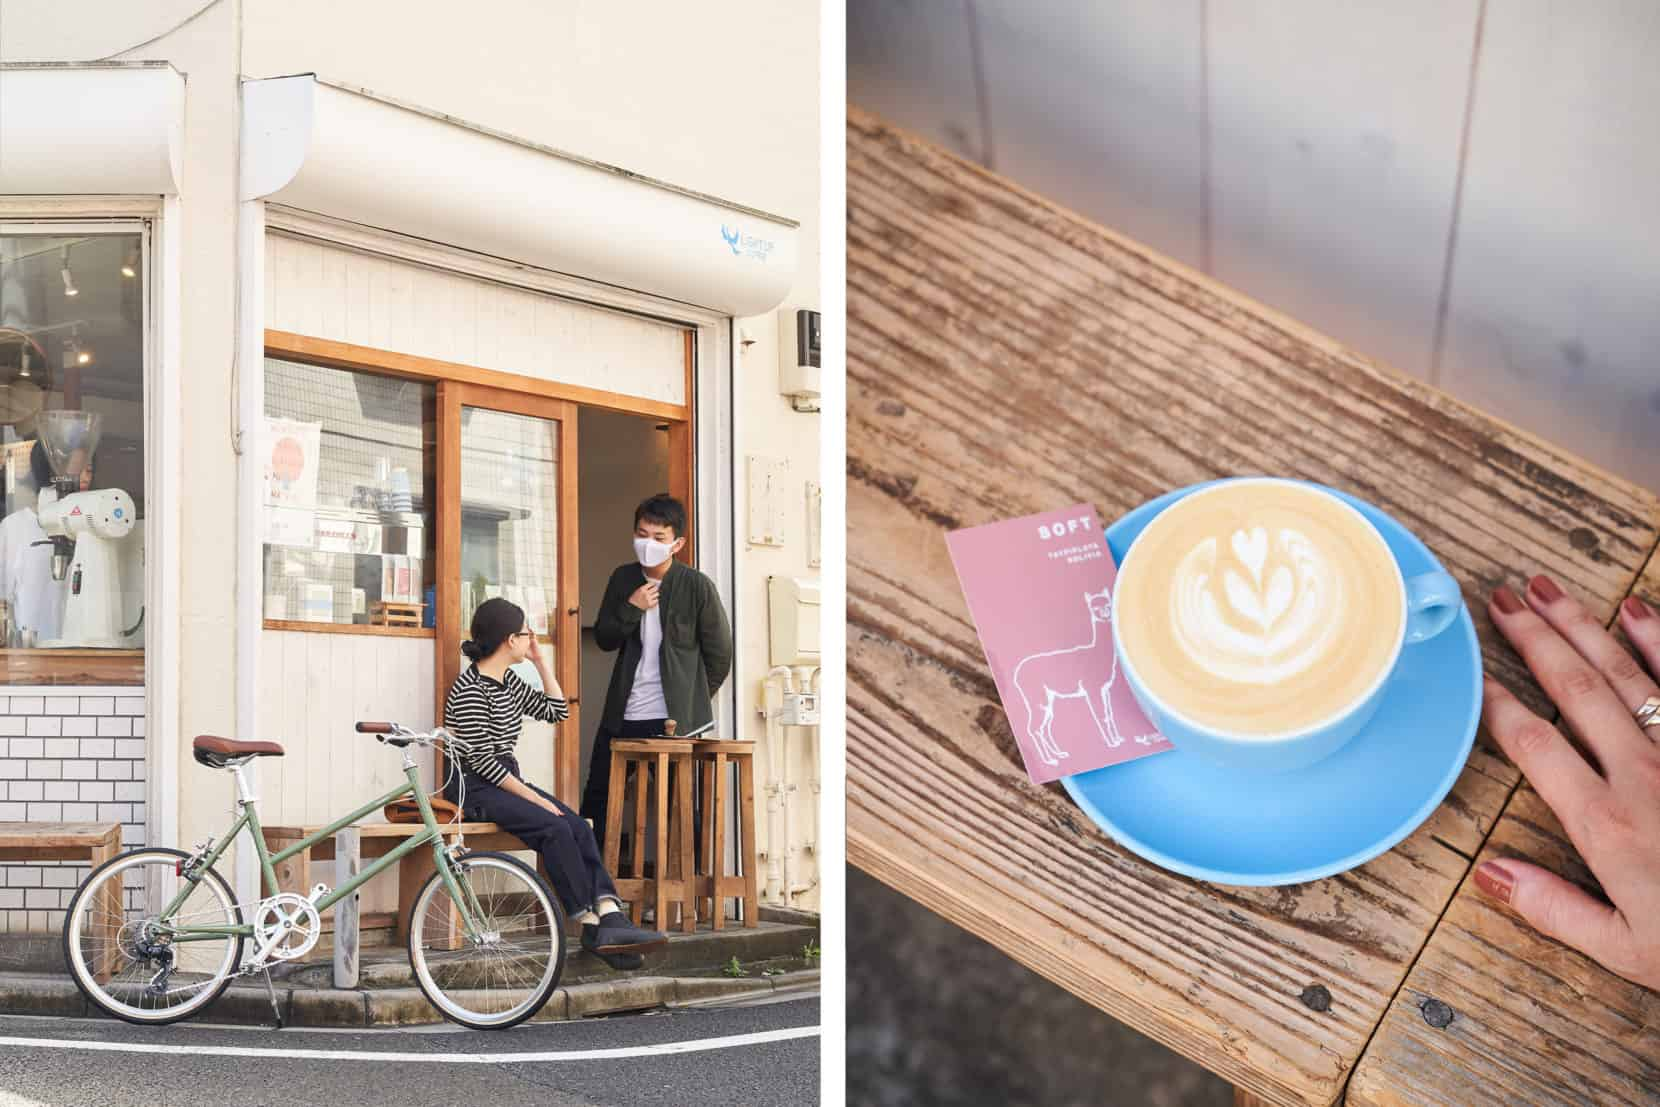 TOKYOBIKE CALIN LIMITED ARTICHOKEとコーヒーを飲む女性